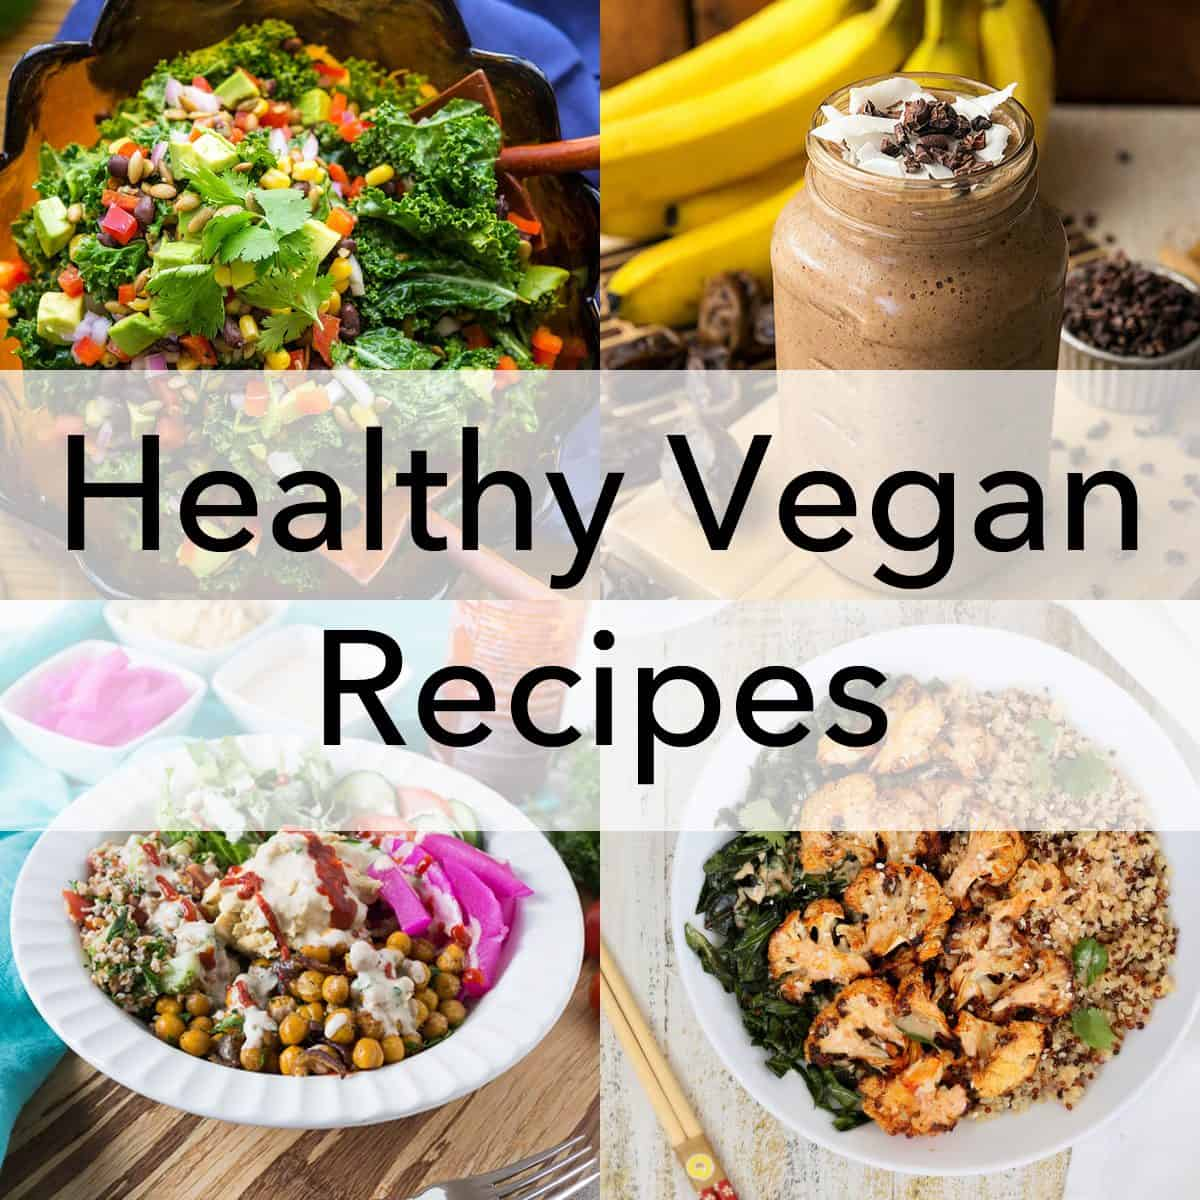 Healthy Vegan Recipes